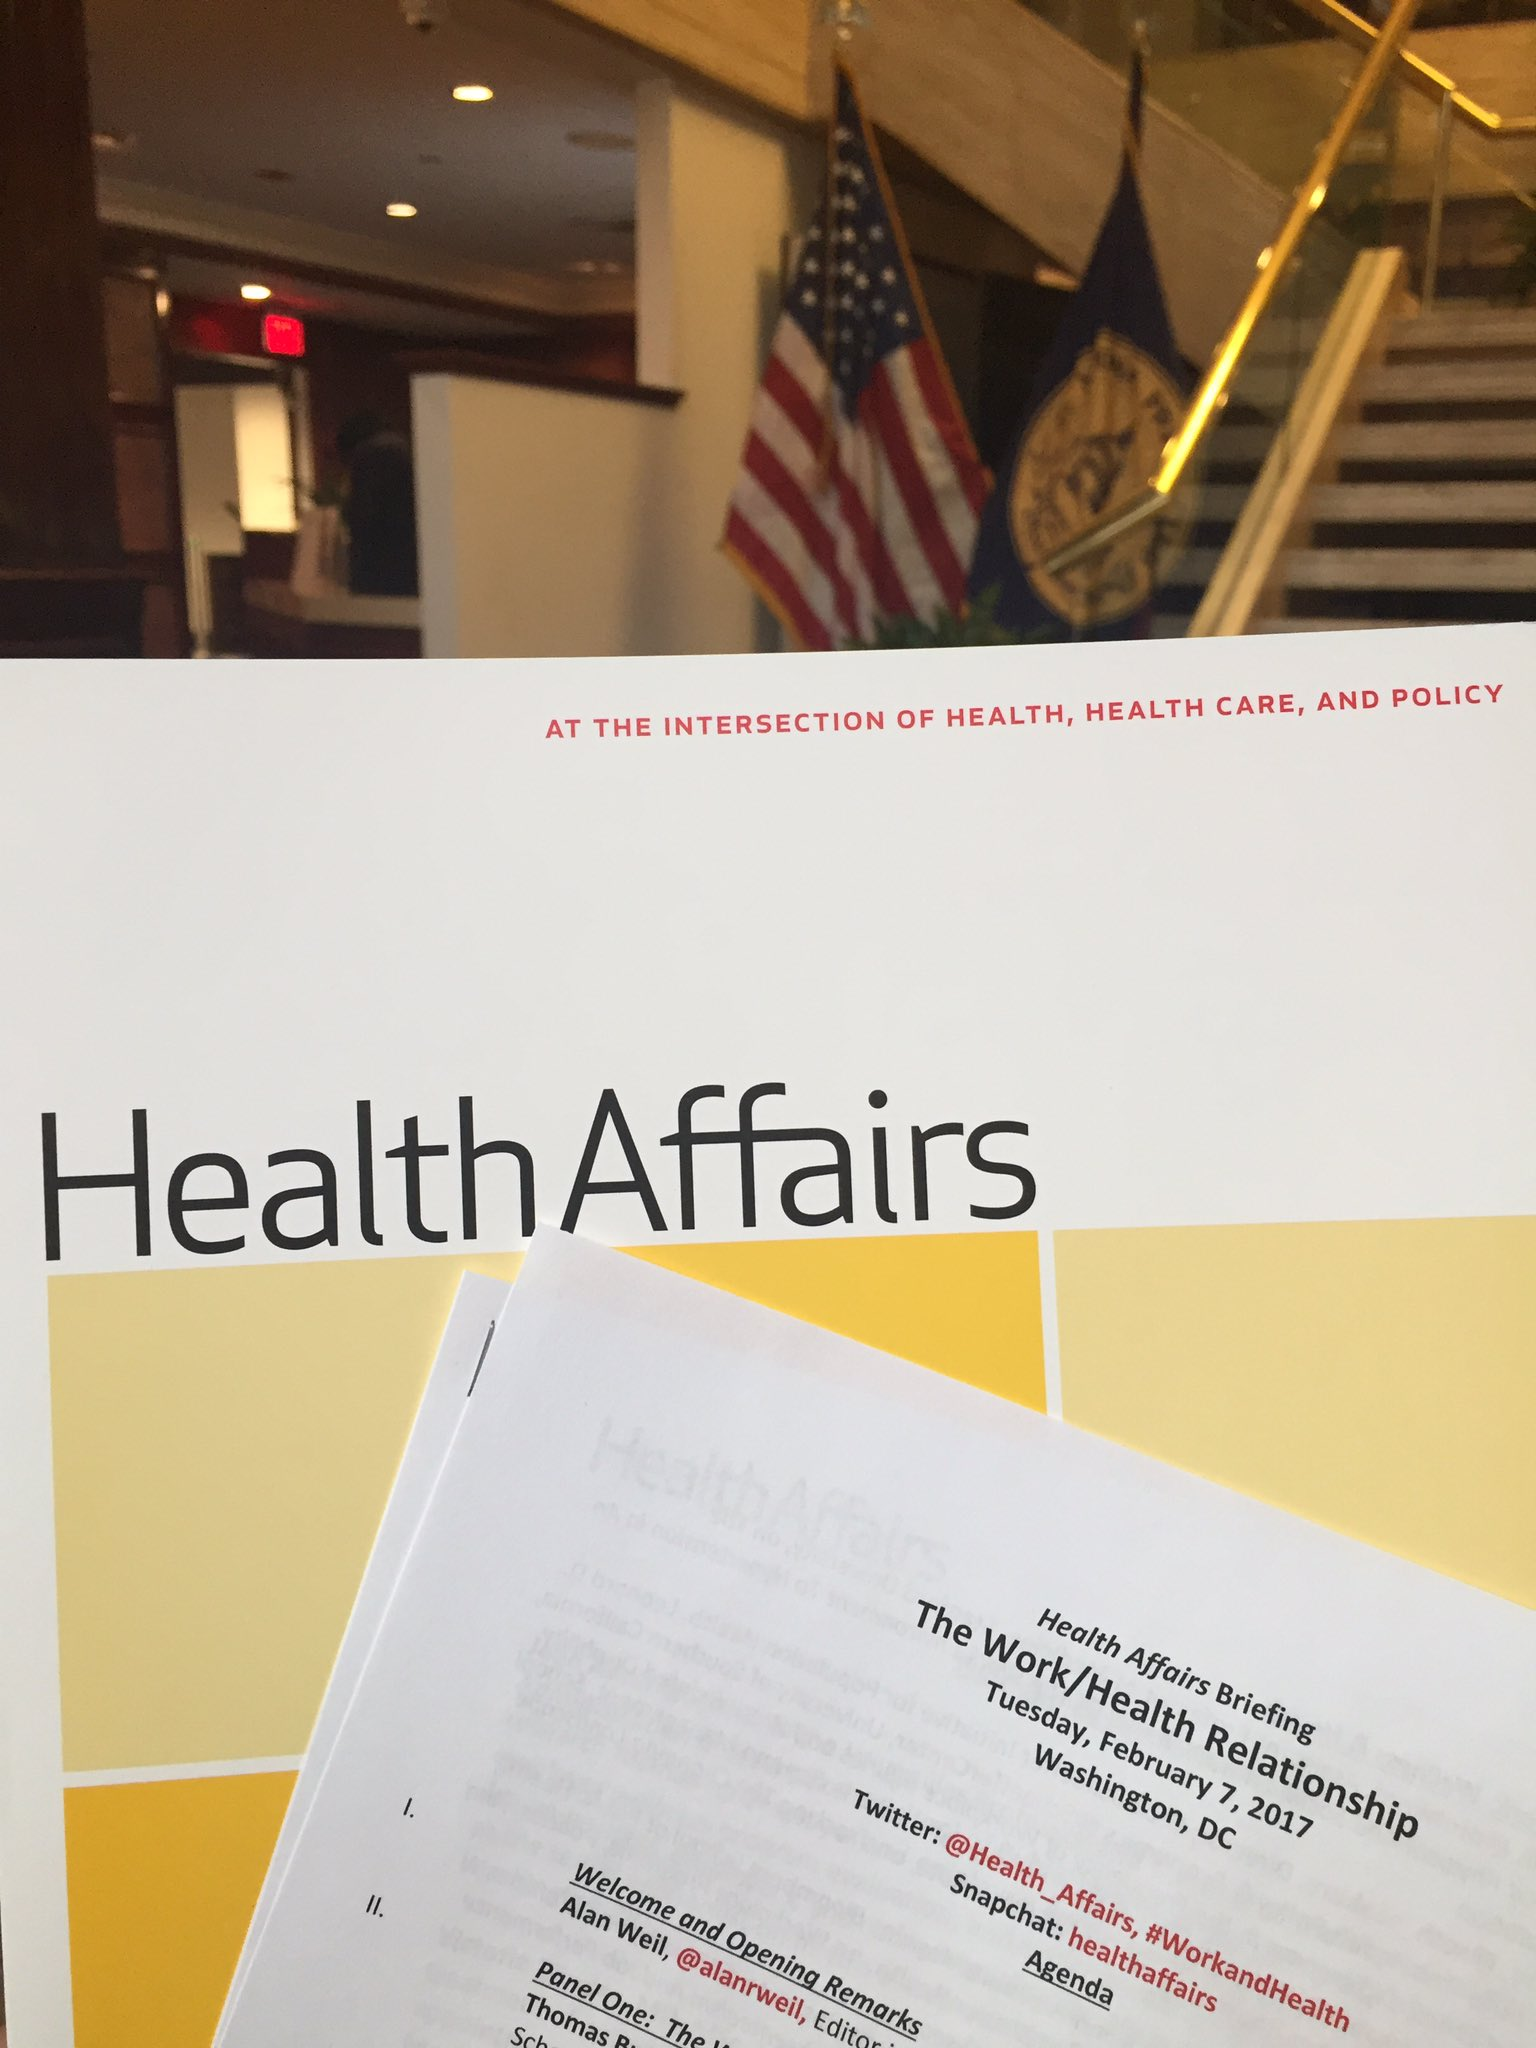 Follow @Health_Affairs DC briefing via #WorkandHealth, beginning 9:00AM EST. February special issue is a must read for employers. #benefits https://t.co/pkxhncYrve